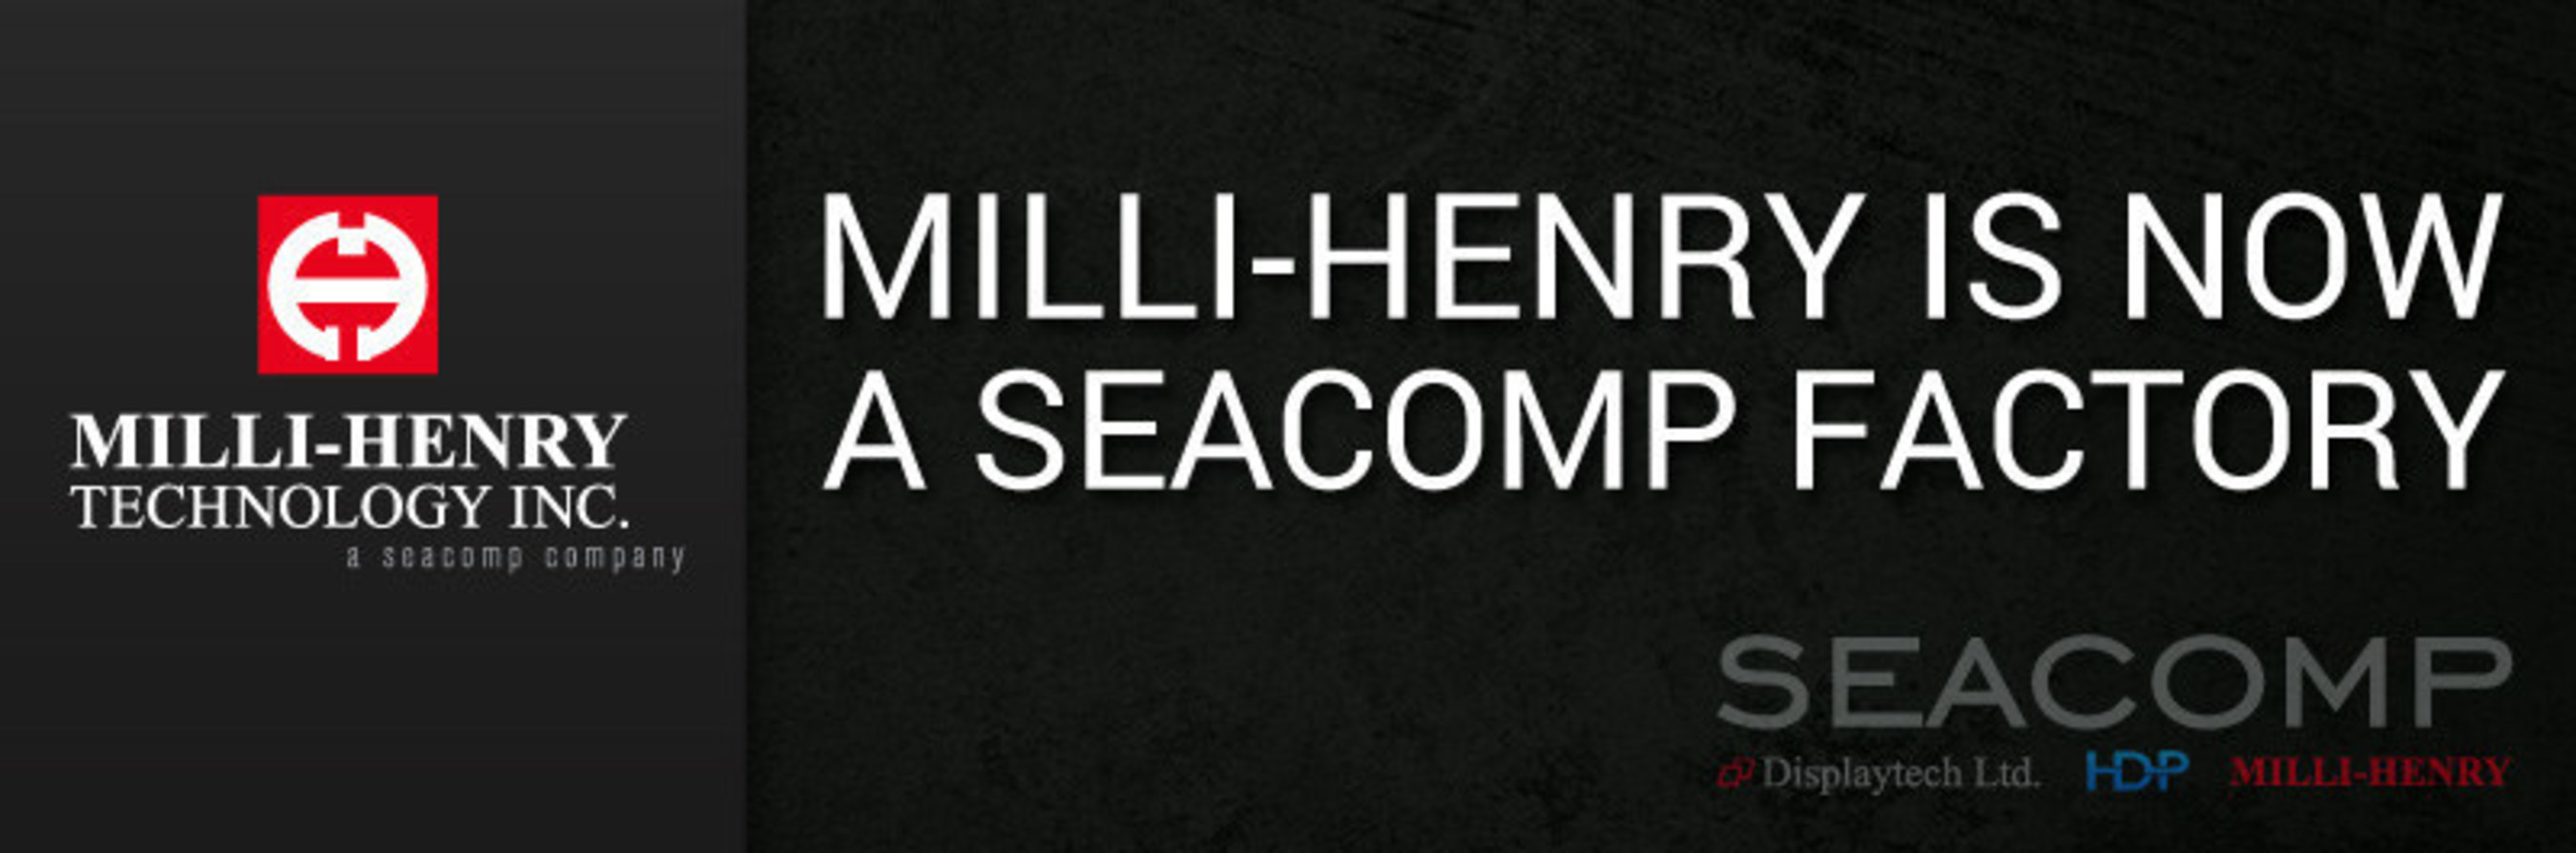 SEACOMP acquires modern manufacturing company, Milli-Henry